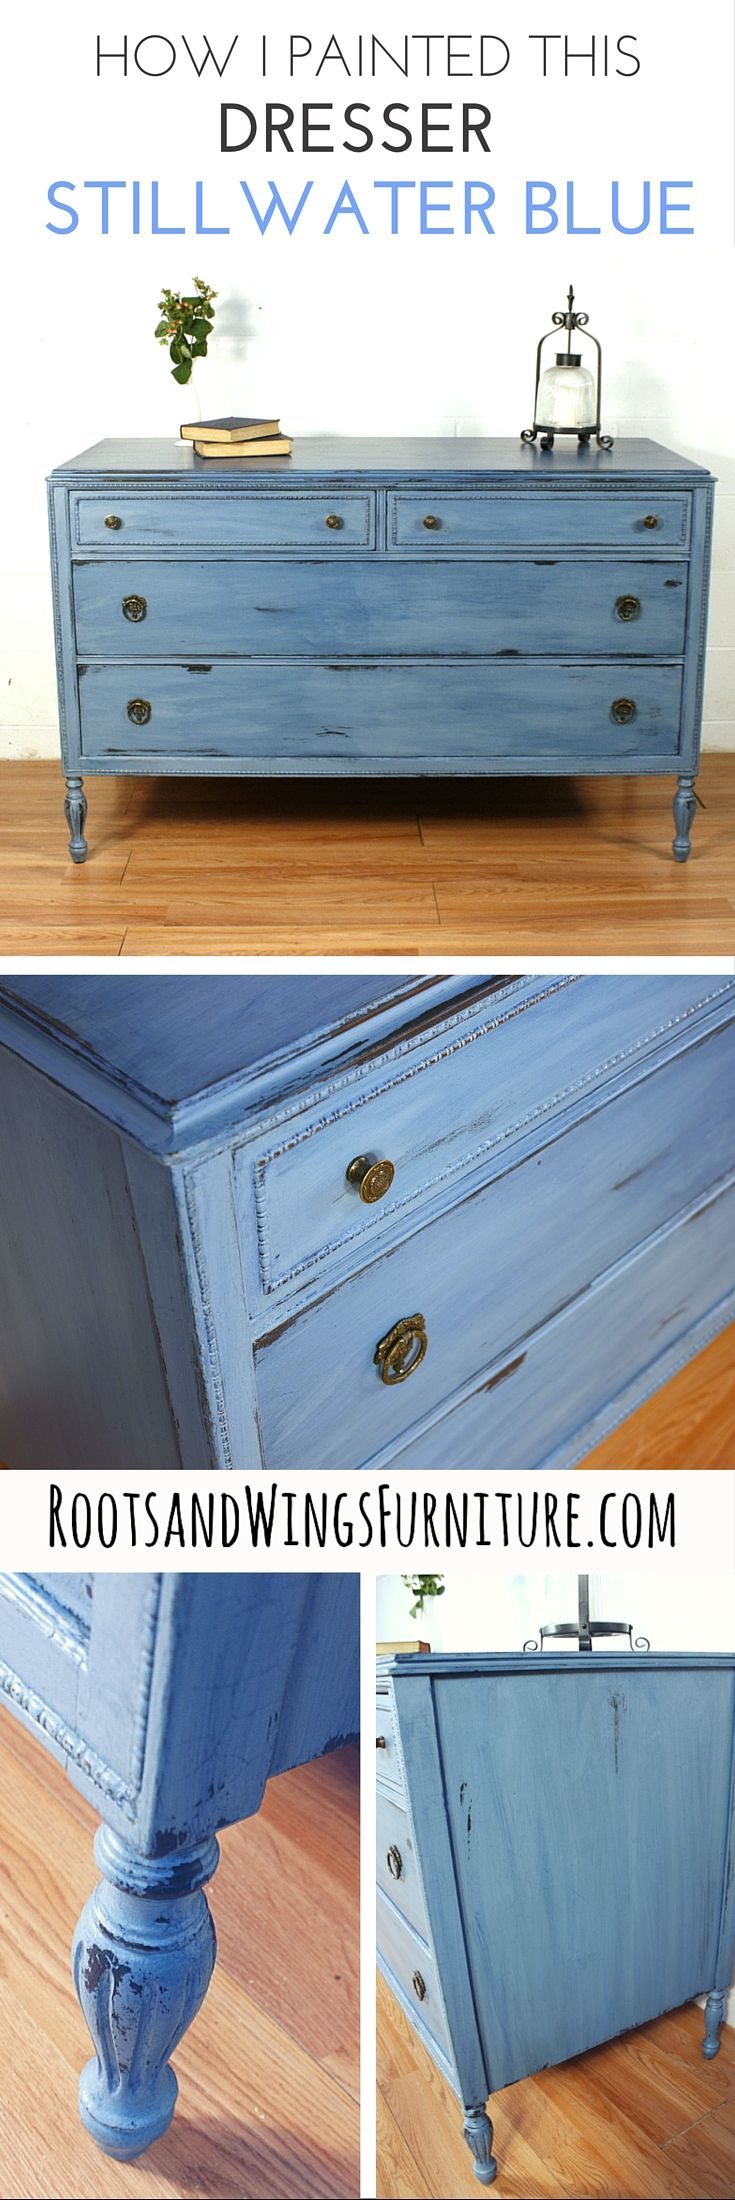 A Dresser Painted In General Finishes Stillwater Blue Chalk Paint, Color  Washed With Coastal Blue